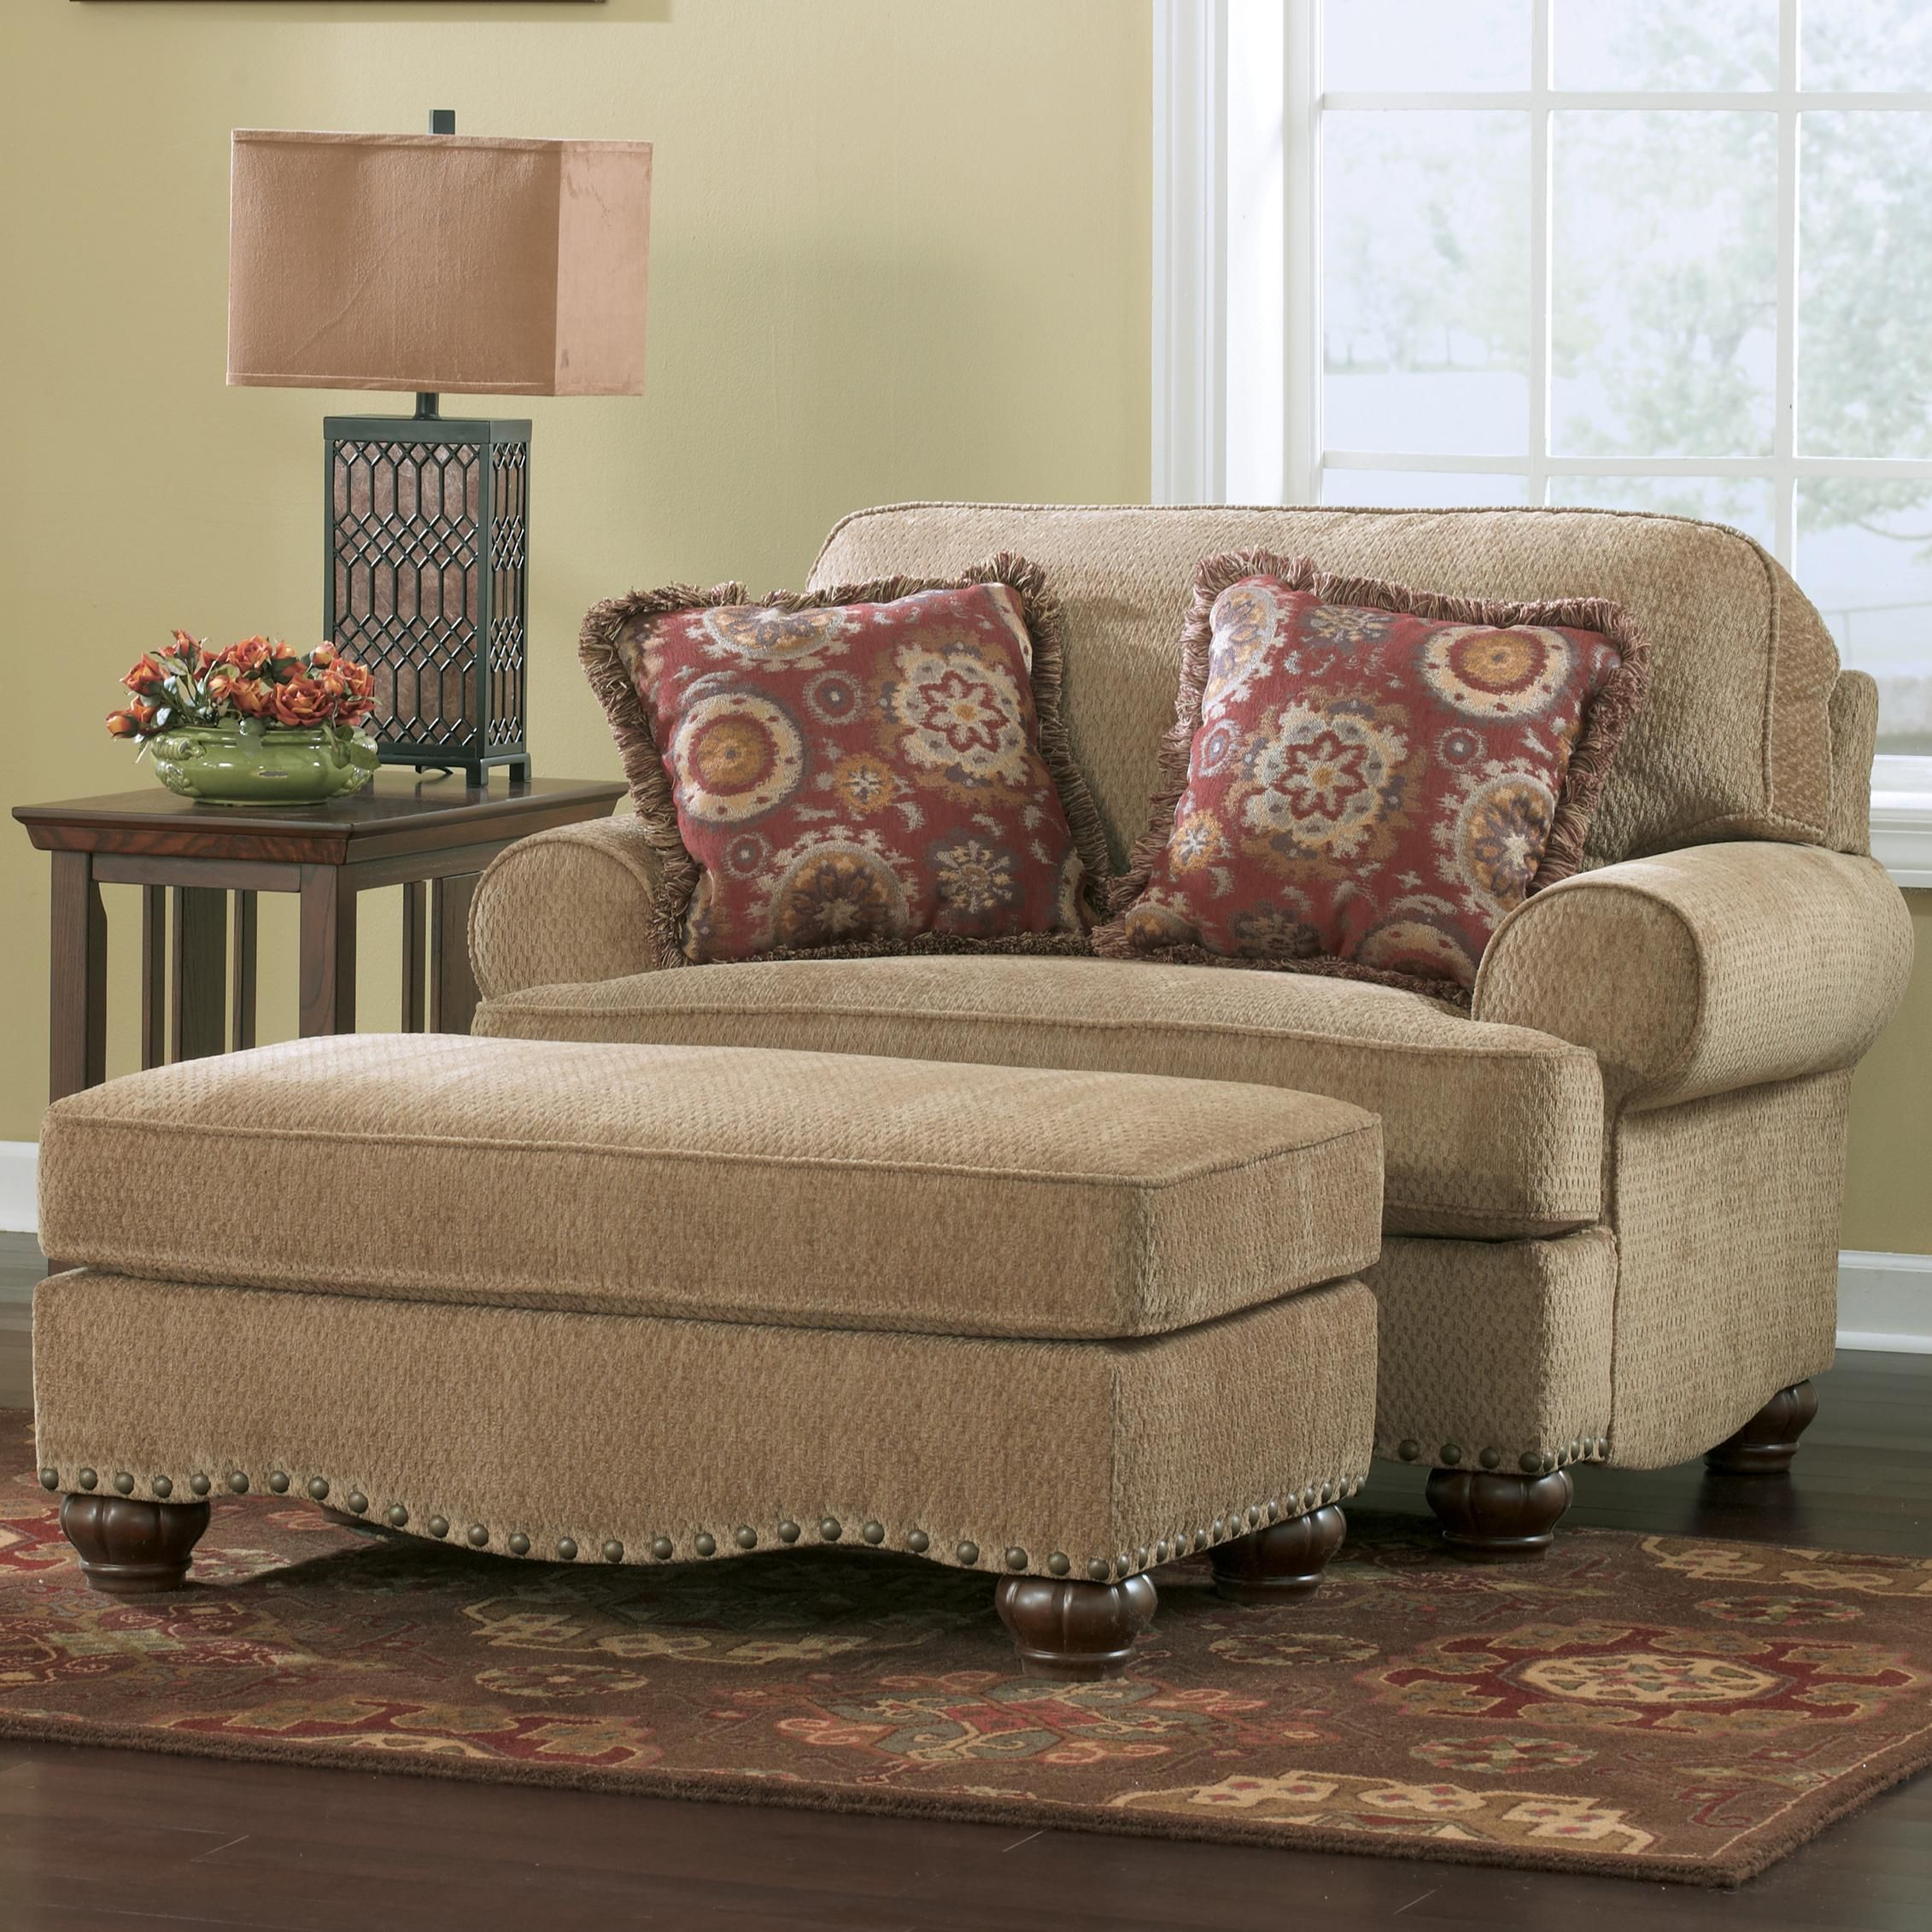 Home Interior room decoration, Living room chairs, Chair